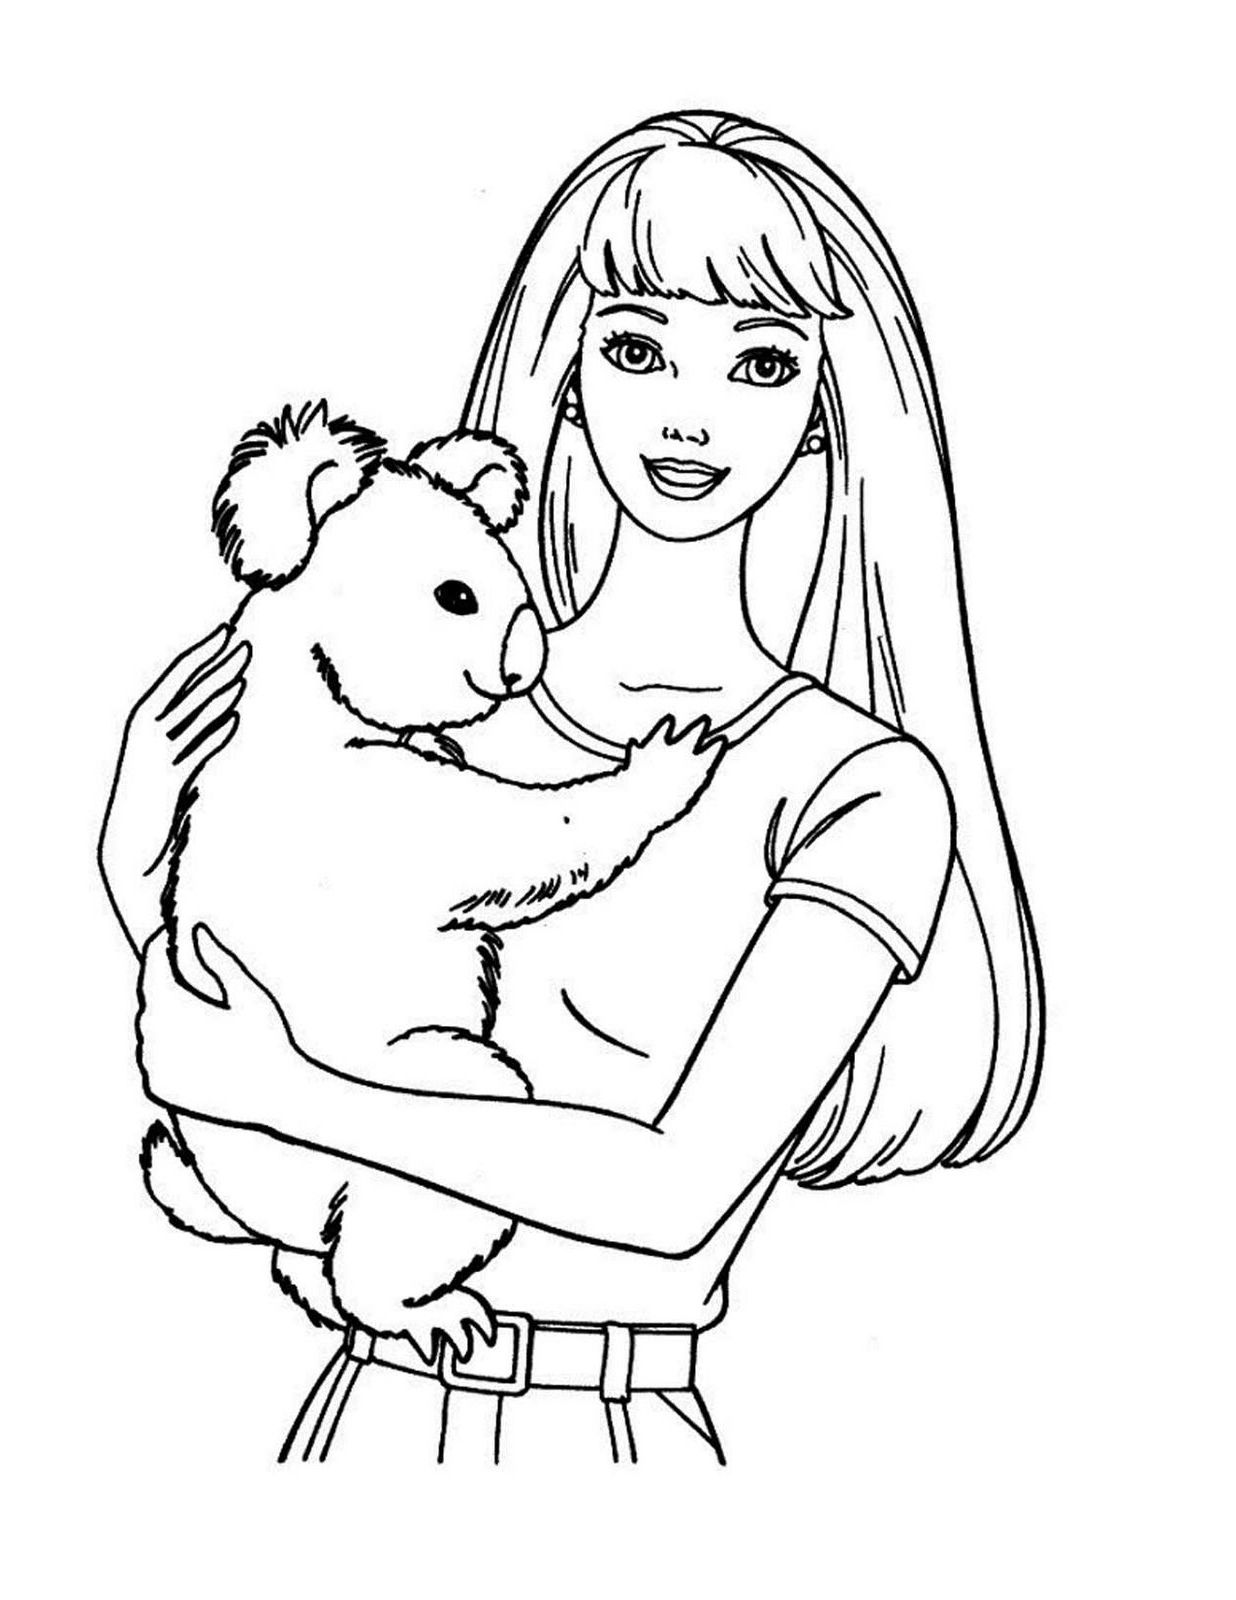 Barbie Coloring Pages With Bear Colorir Trico E Croche Desenhos